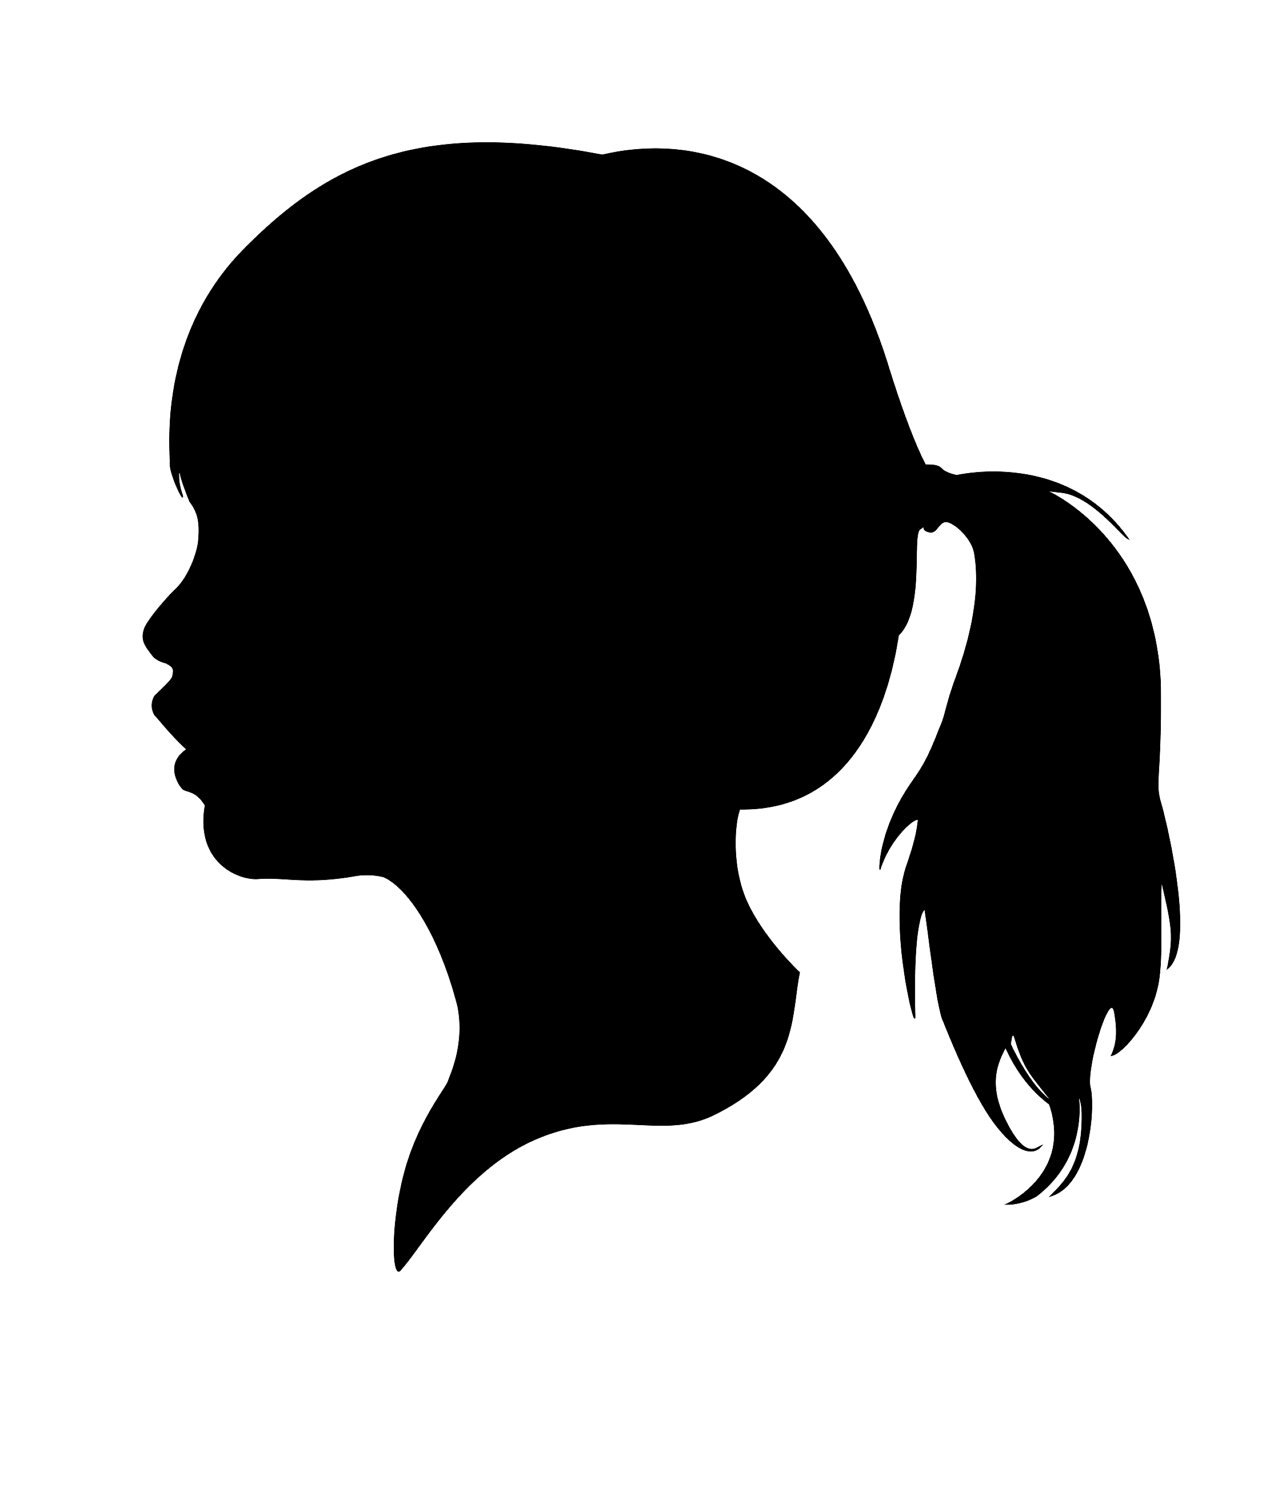 1286x1500 Vader Profile Silhouette